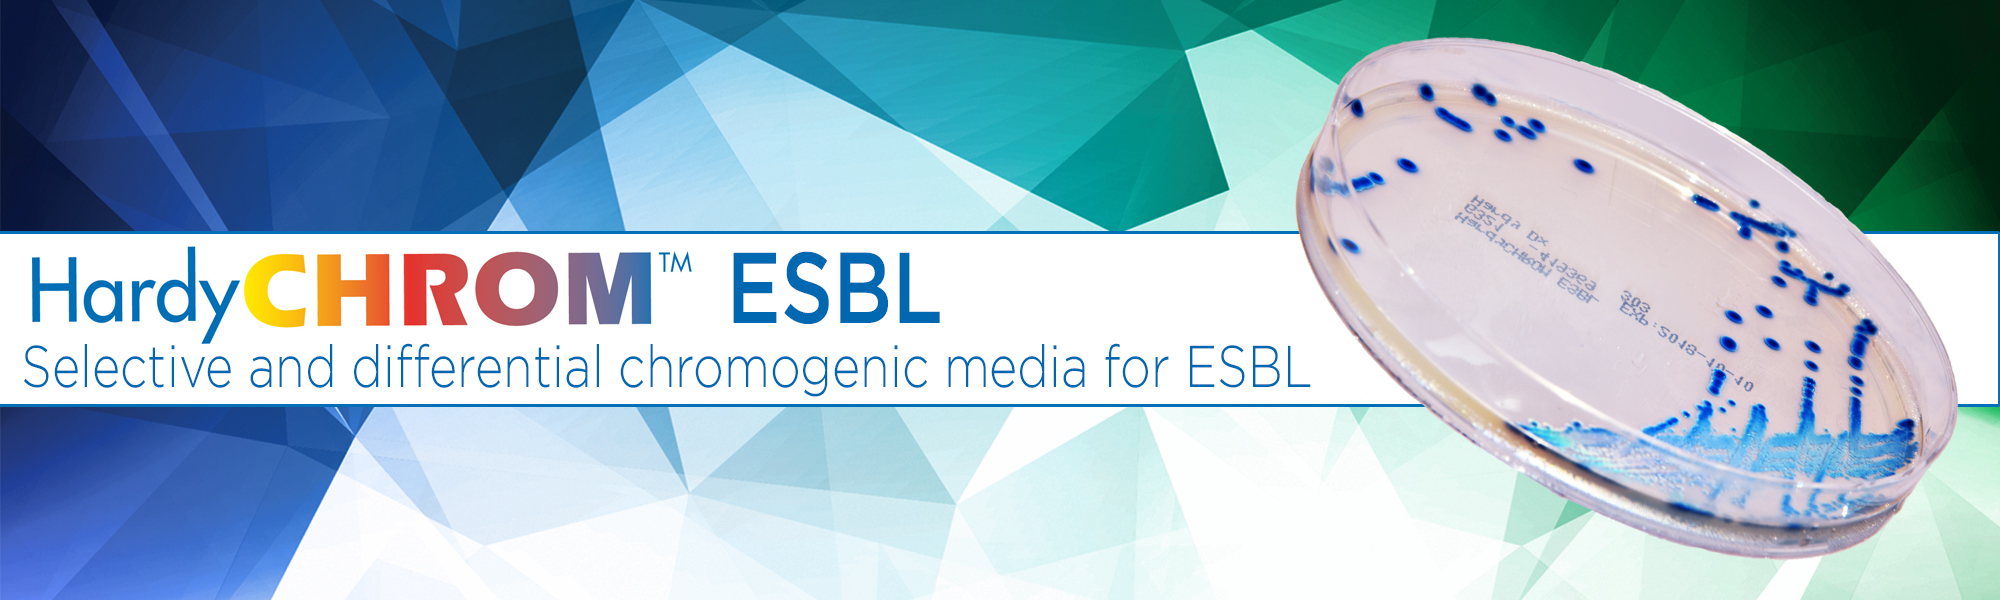 HardyCHROM ESBL Chromogenic and selective and differential media culture media for esbl extended spectrum beta lactamase